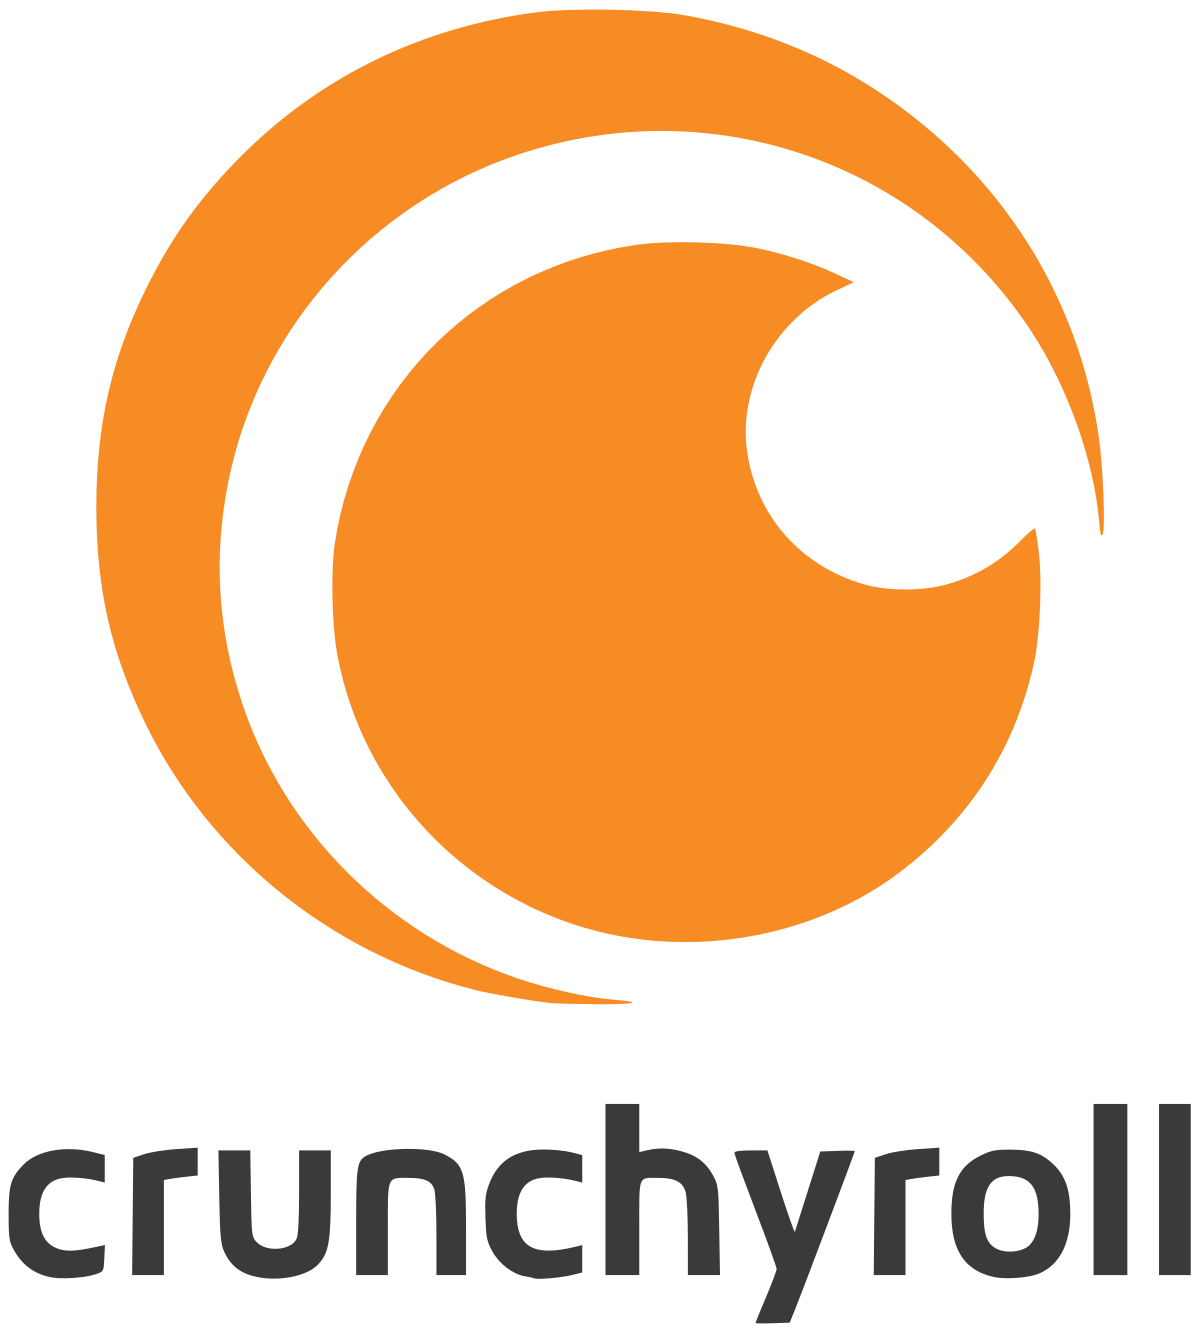 Crunchyroll, a WarnerMedia company (as part of Otter Media) and the world's most popular anime brand, connects anime and manga fans in more than 200 countries and territories with 360-degree experiences.